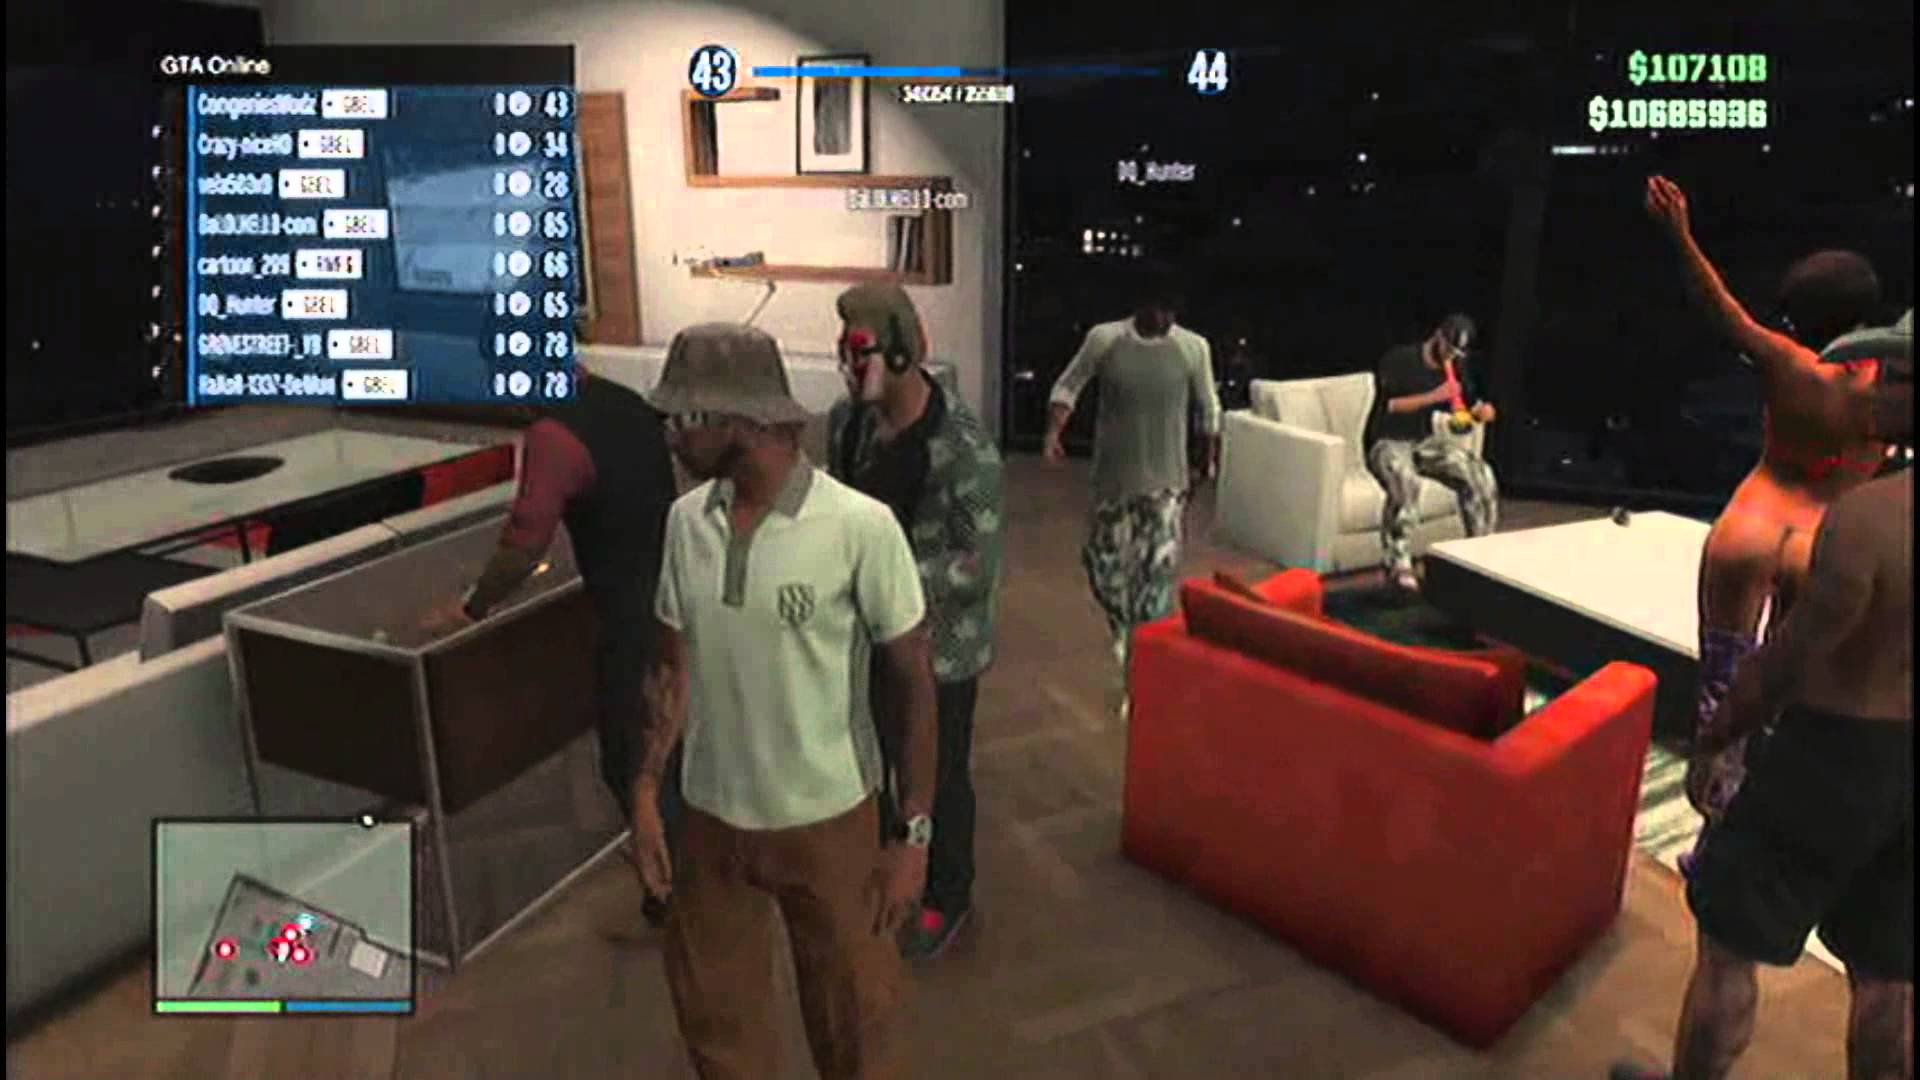 how to get more than 32 million gta 5